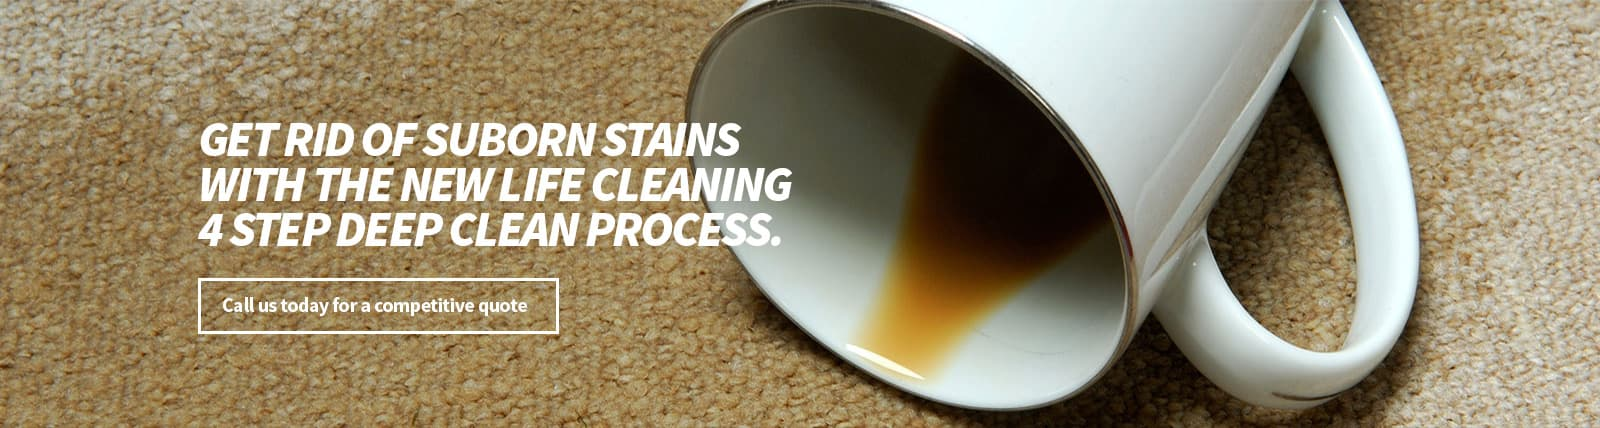 Get Rid of Stubborn Stains